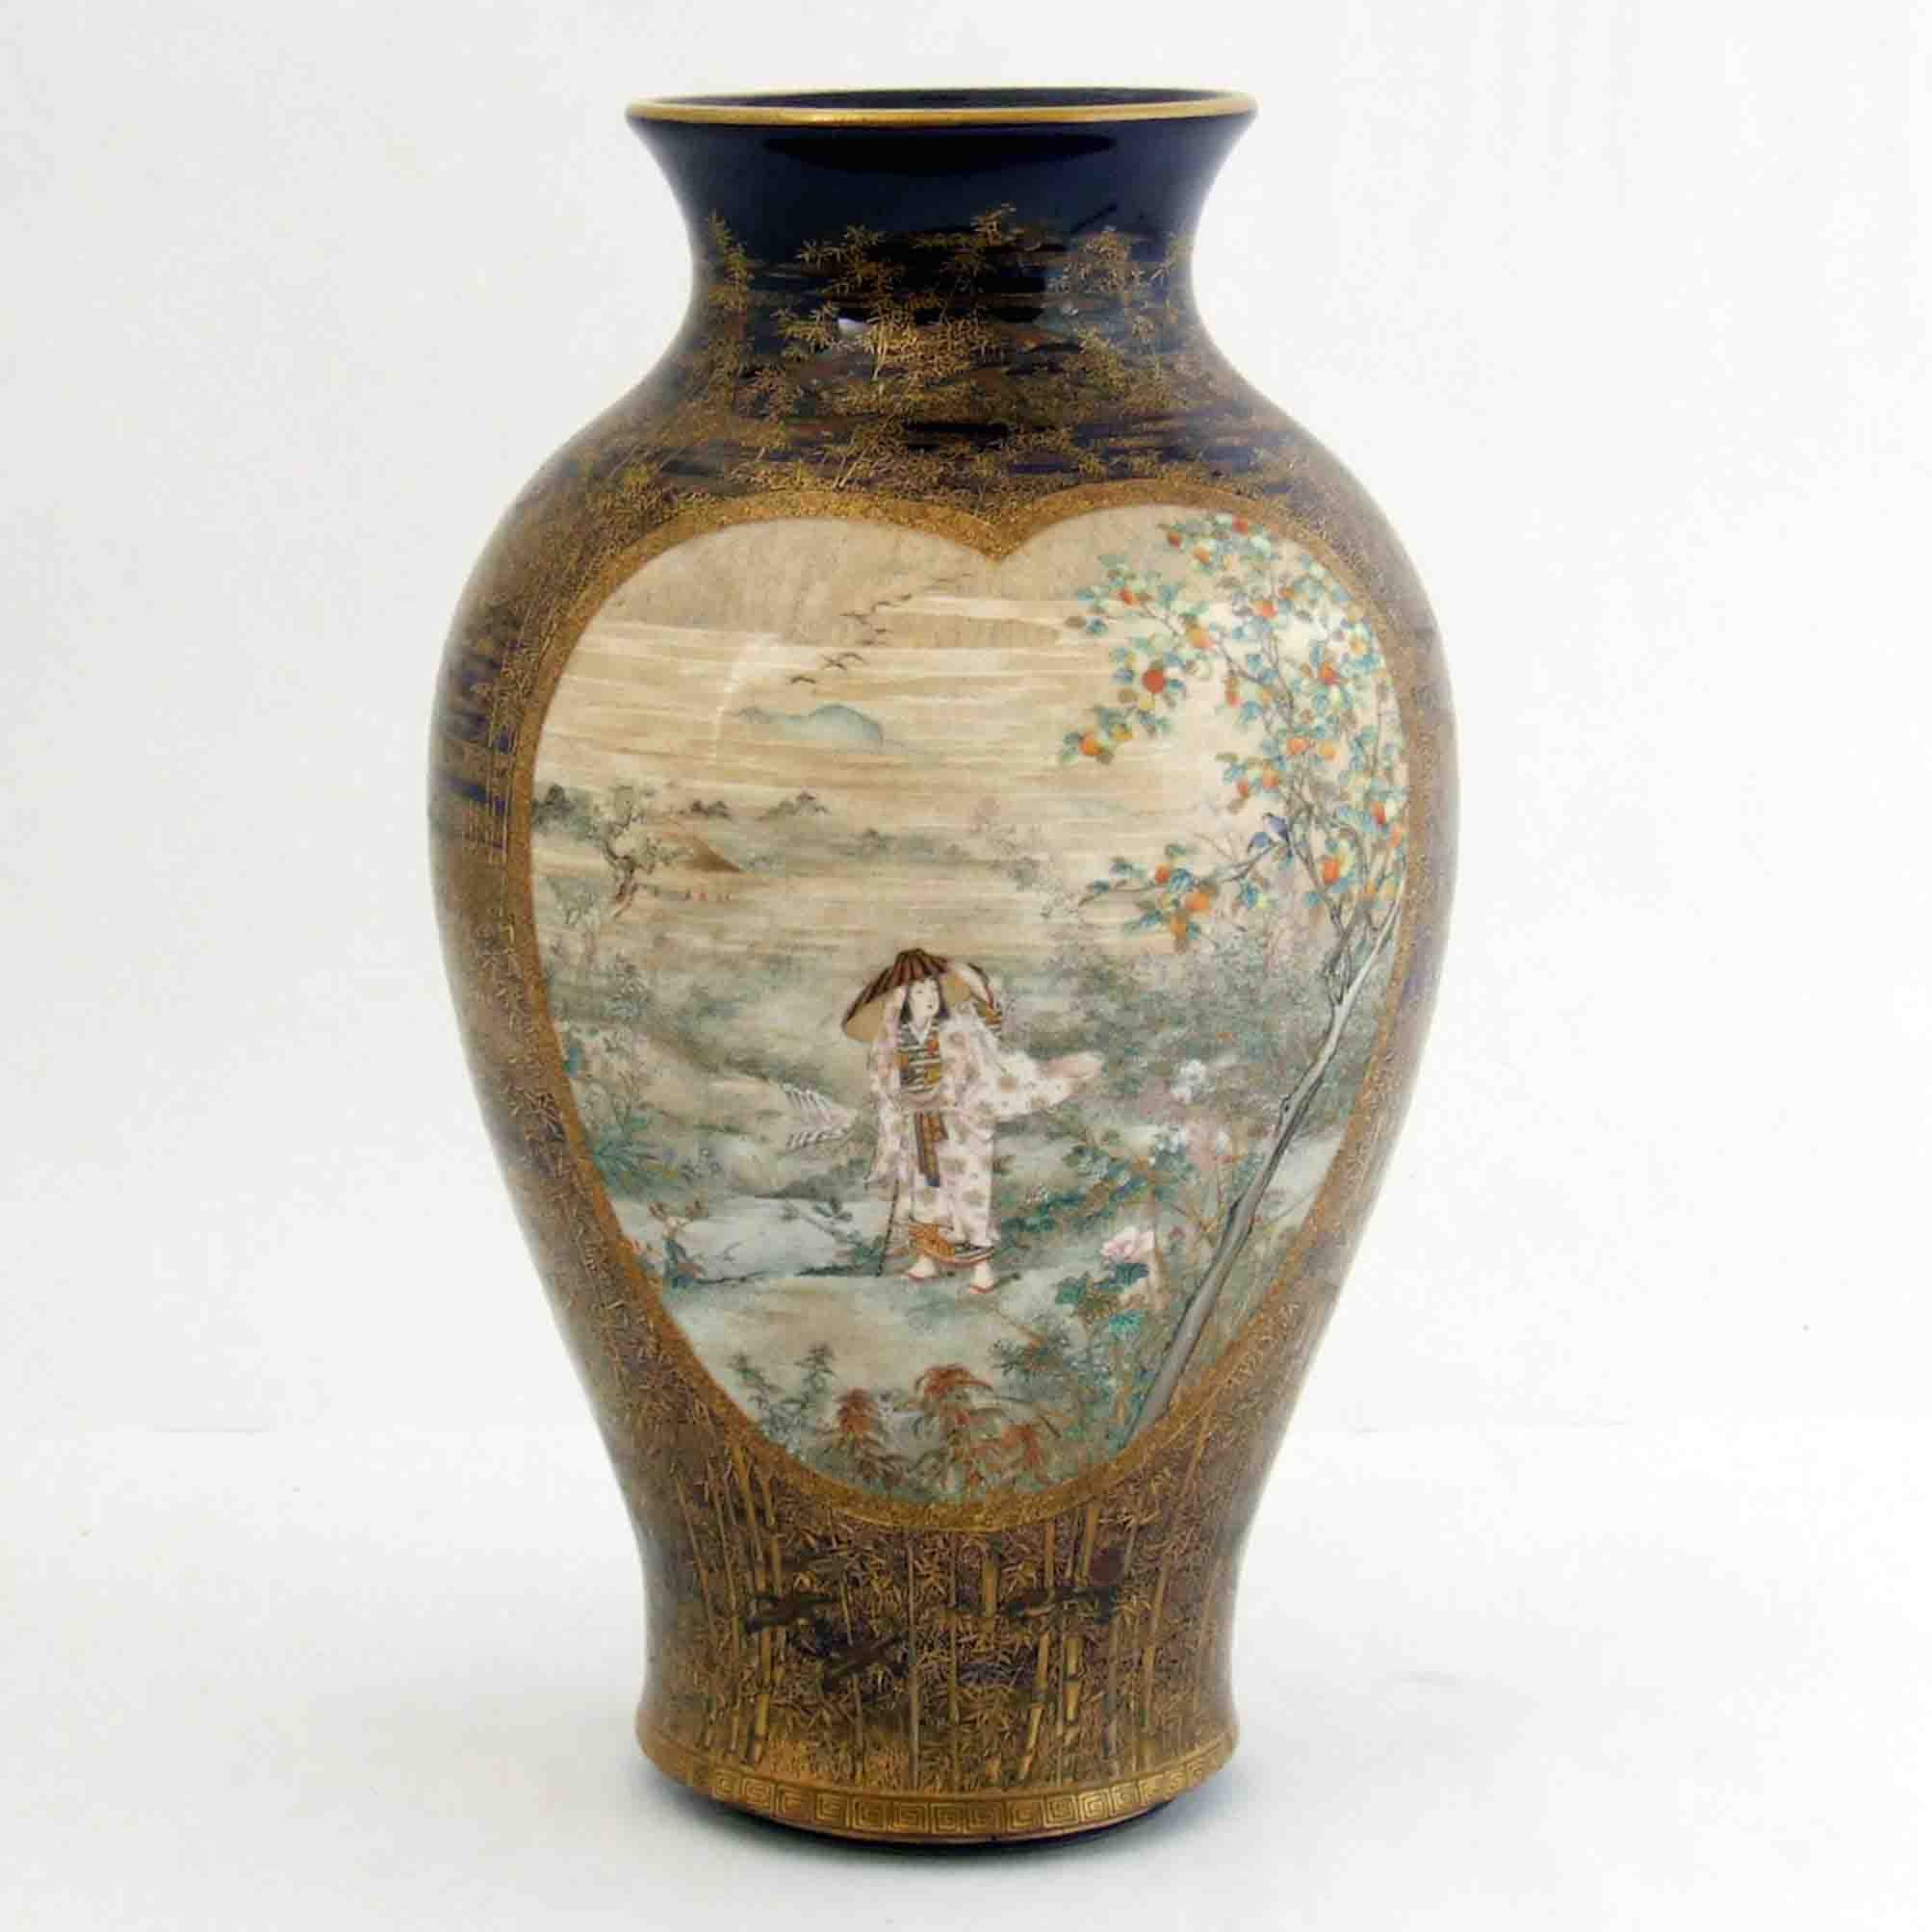 Miscellaneana satsuma the ware is named after satsuma province now kagoshima prefecture on kyushu the southernmost of japans islands korean potters founded kilns there in reviewsmspy